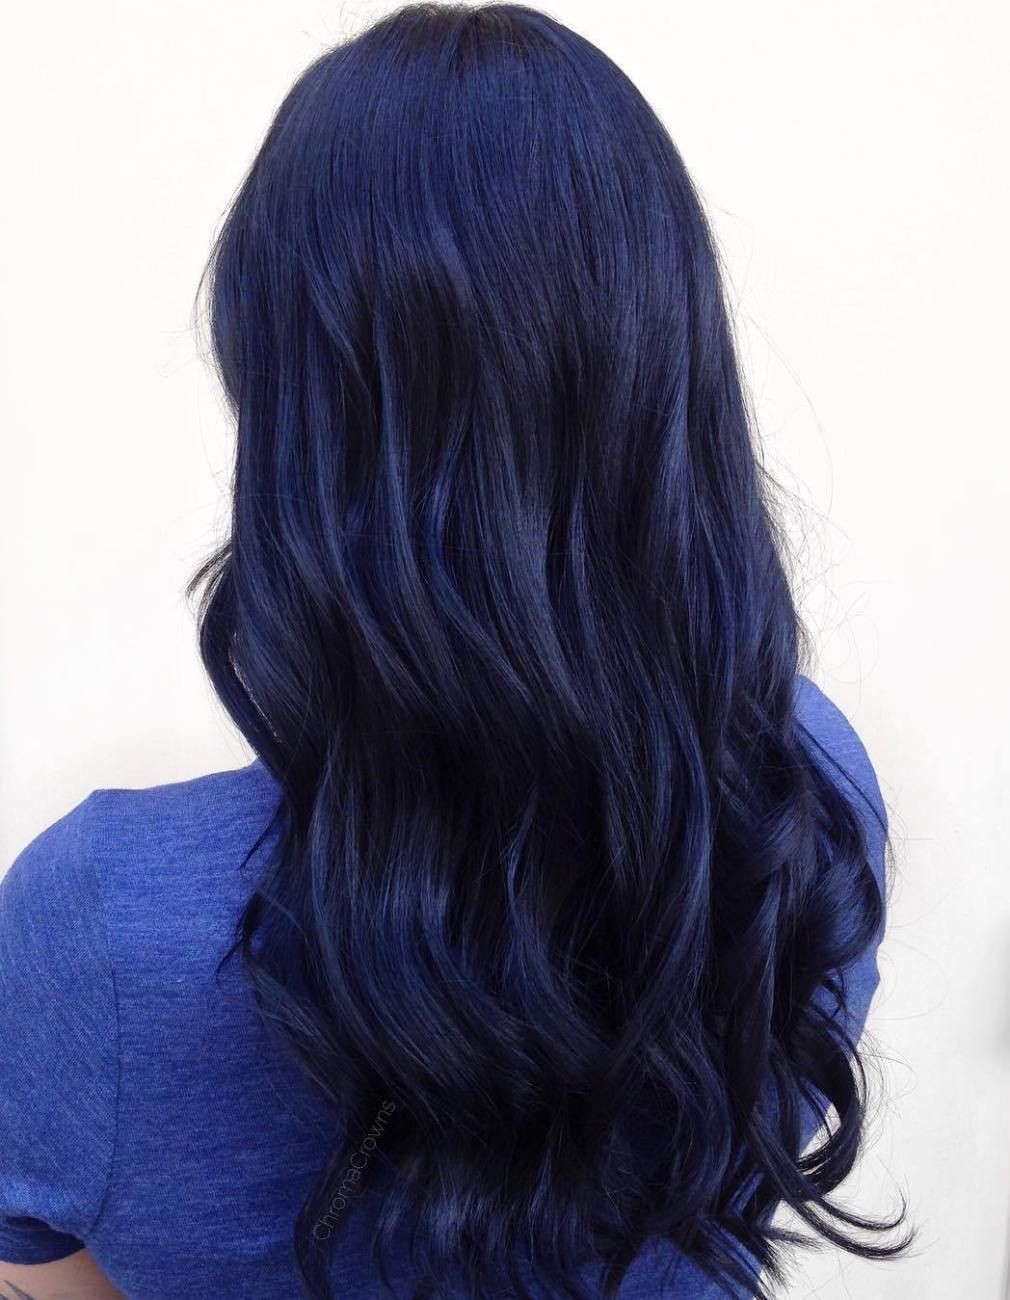 Blue Black Hair How To Get It Right Blue Black Hair Black Hair Dye Dark Hair Dye